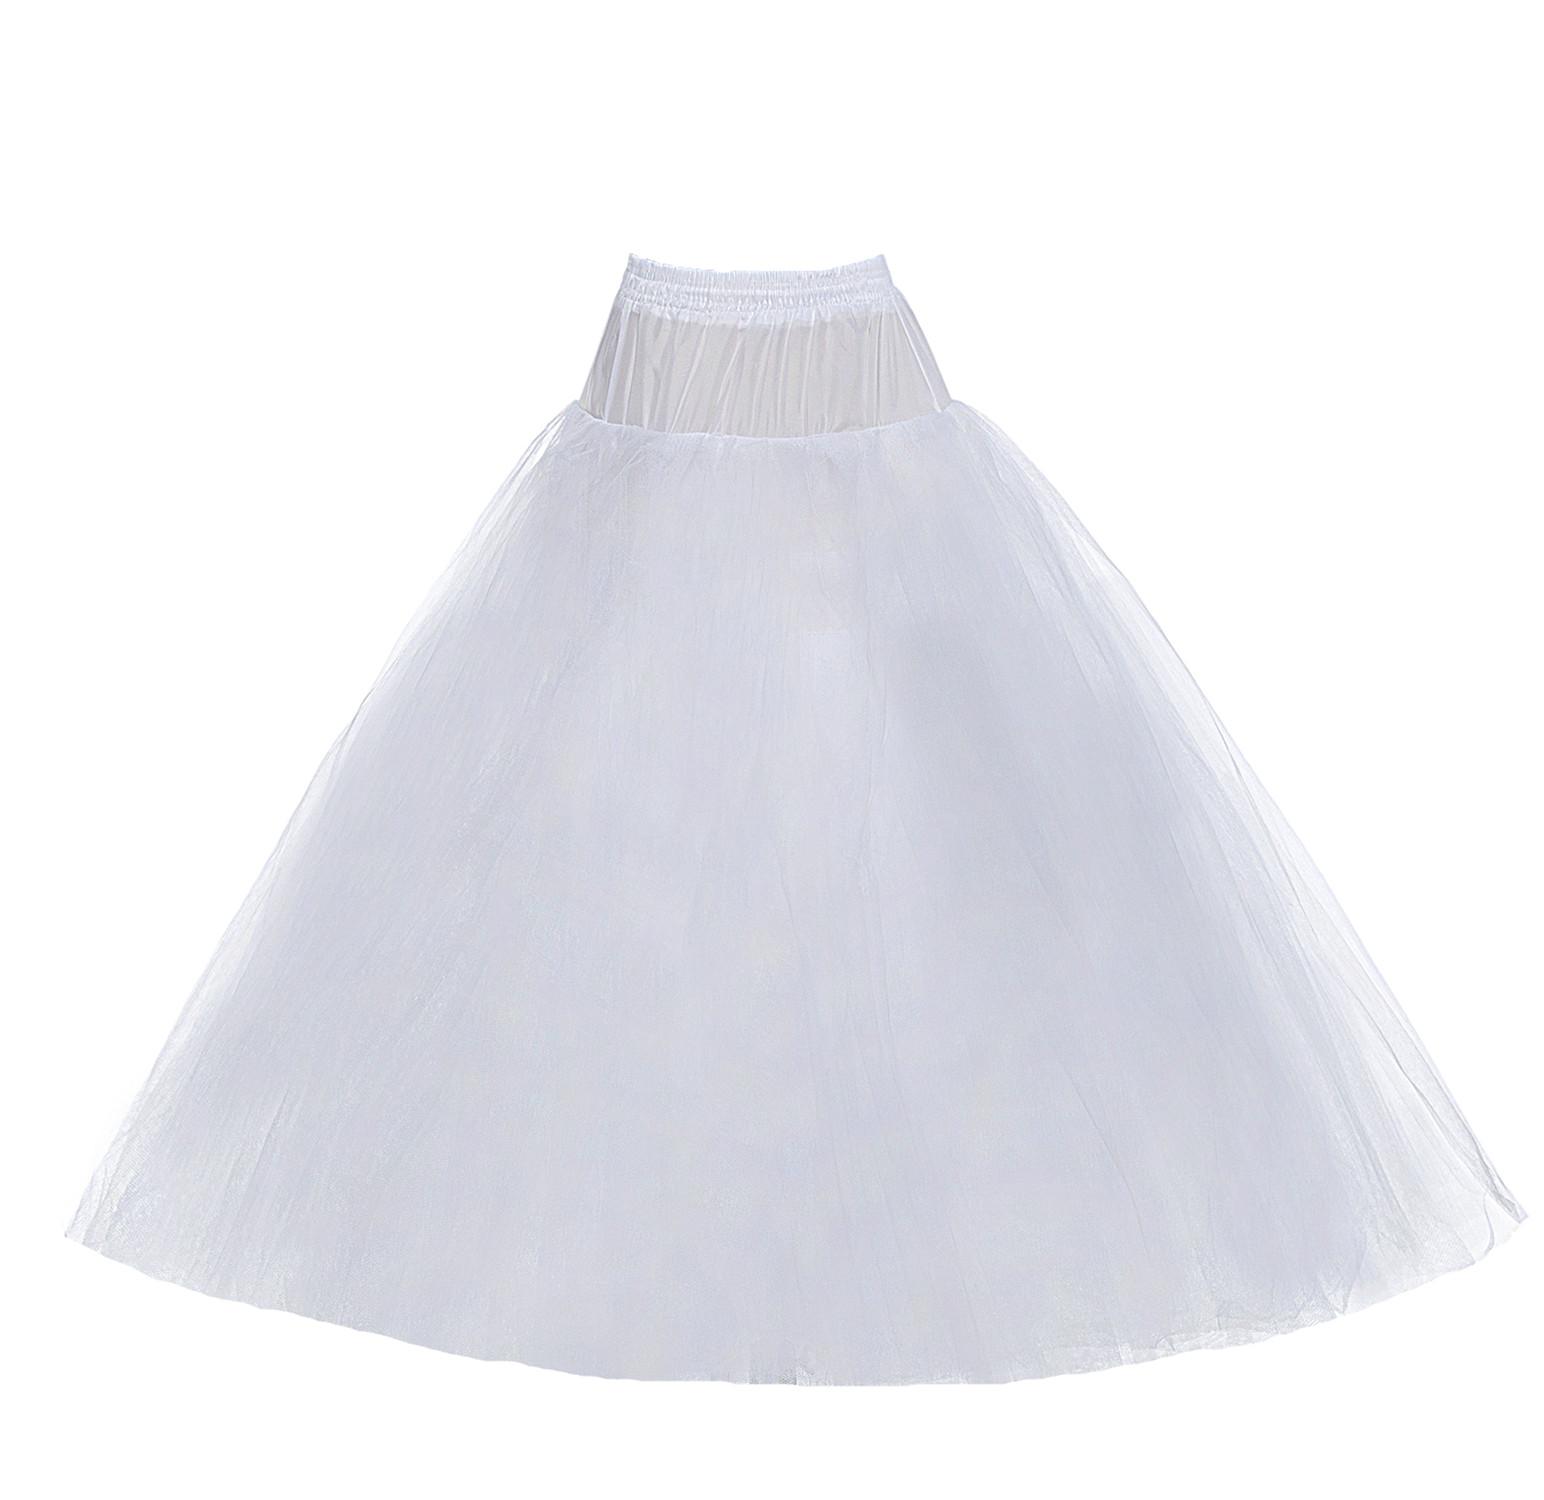 Ball Gown Style 8 Layer Tulle Hoopless White Petticoat Wedding Gown Crinoline Petticoat Skirt Slip Free Shipping